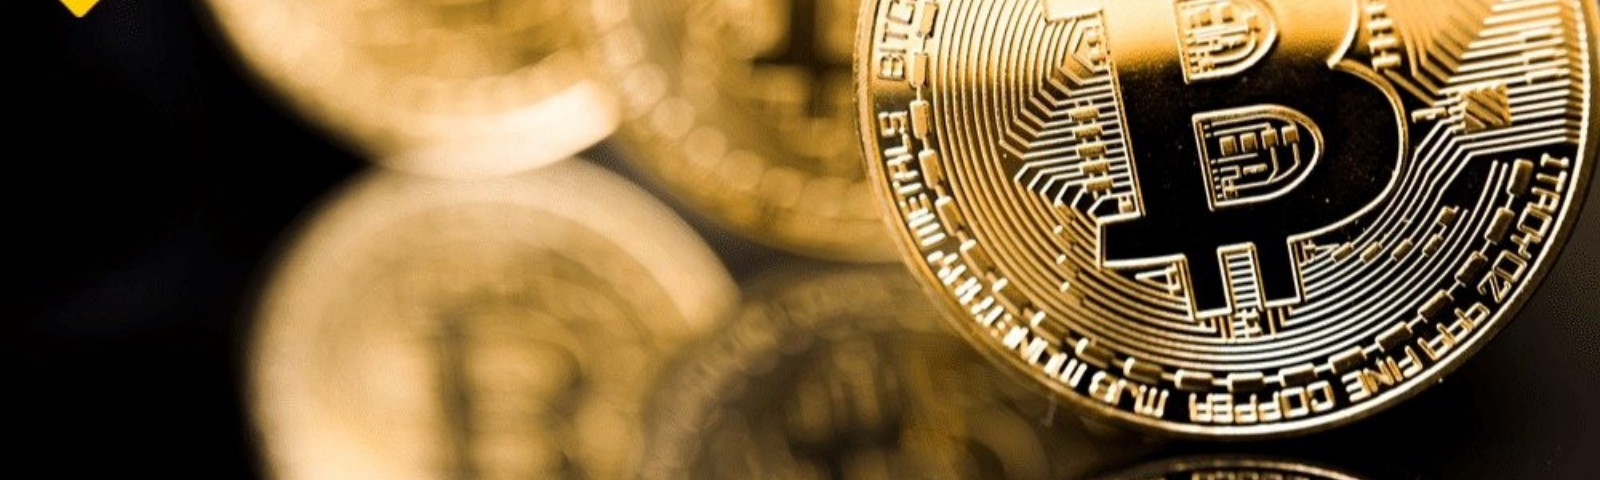 cryptocurrency coins opposite stellar